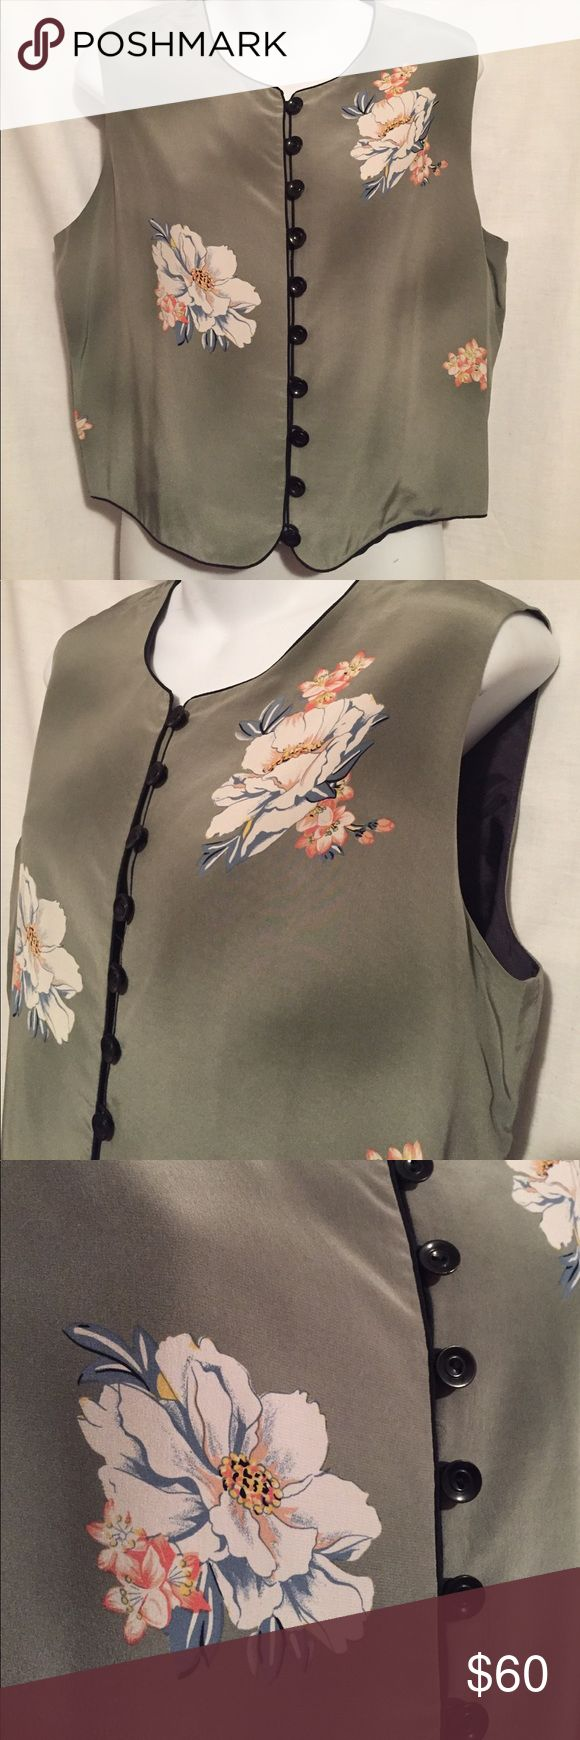 Peter Nygard silk floral vest Beautiful olive green silk with darker accents, inside lining is black. Size 10 Peter Nygard Jackets & Coats Vests